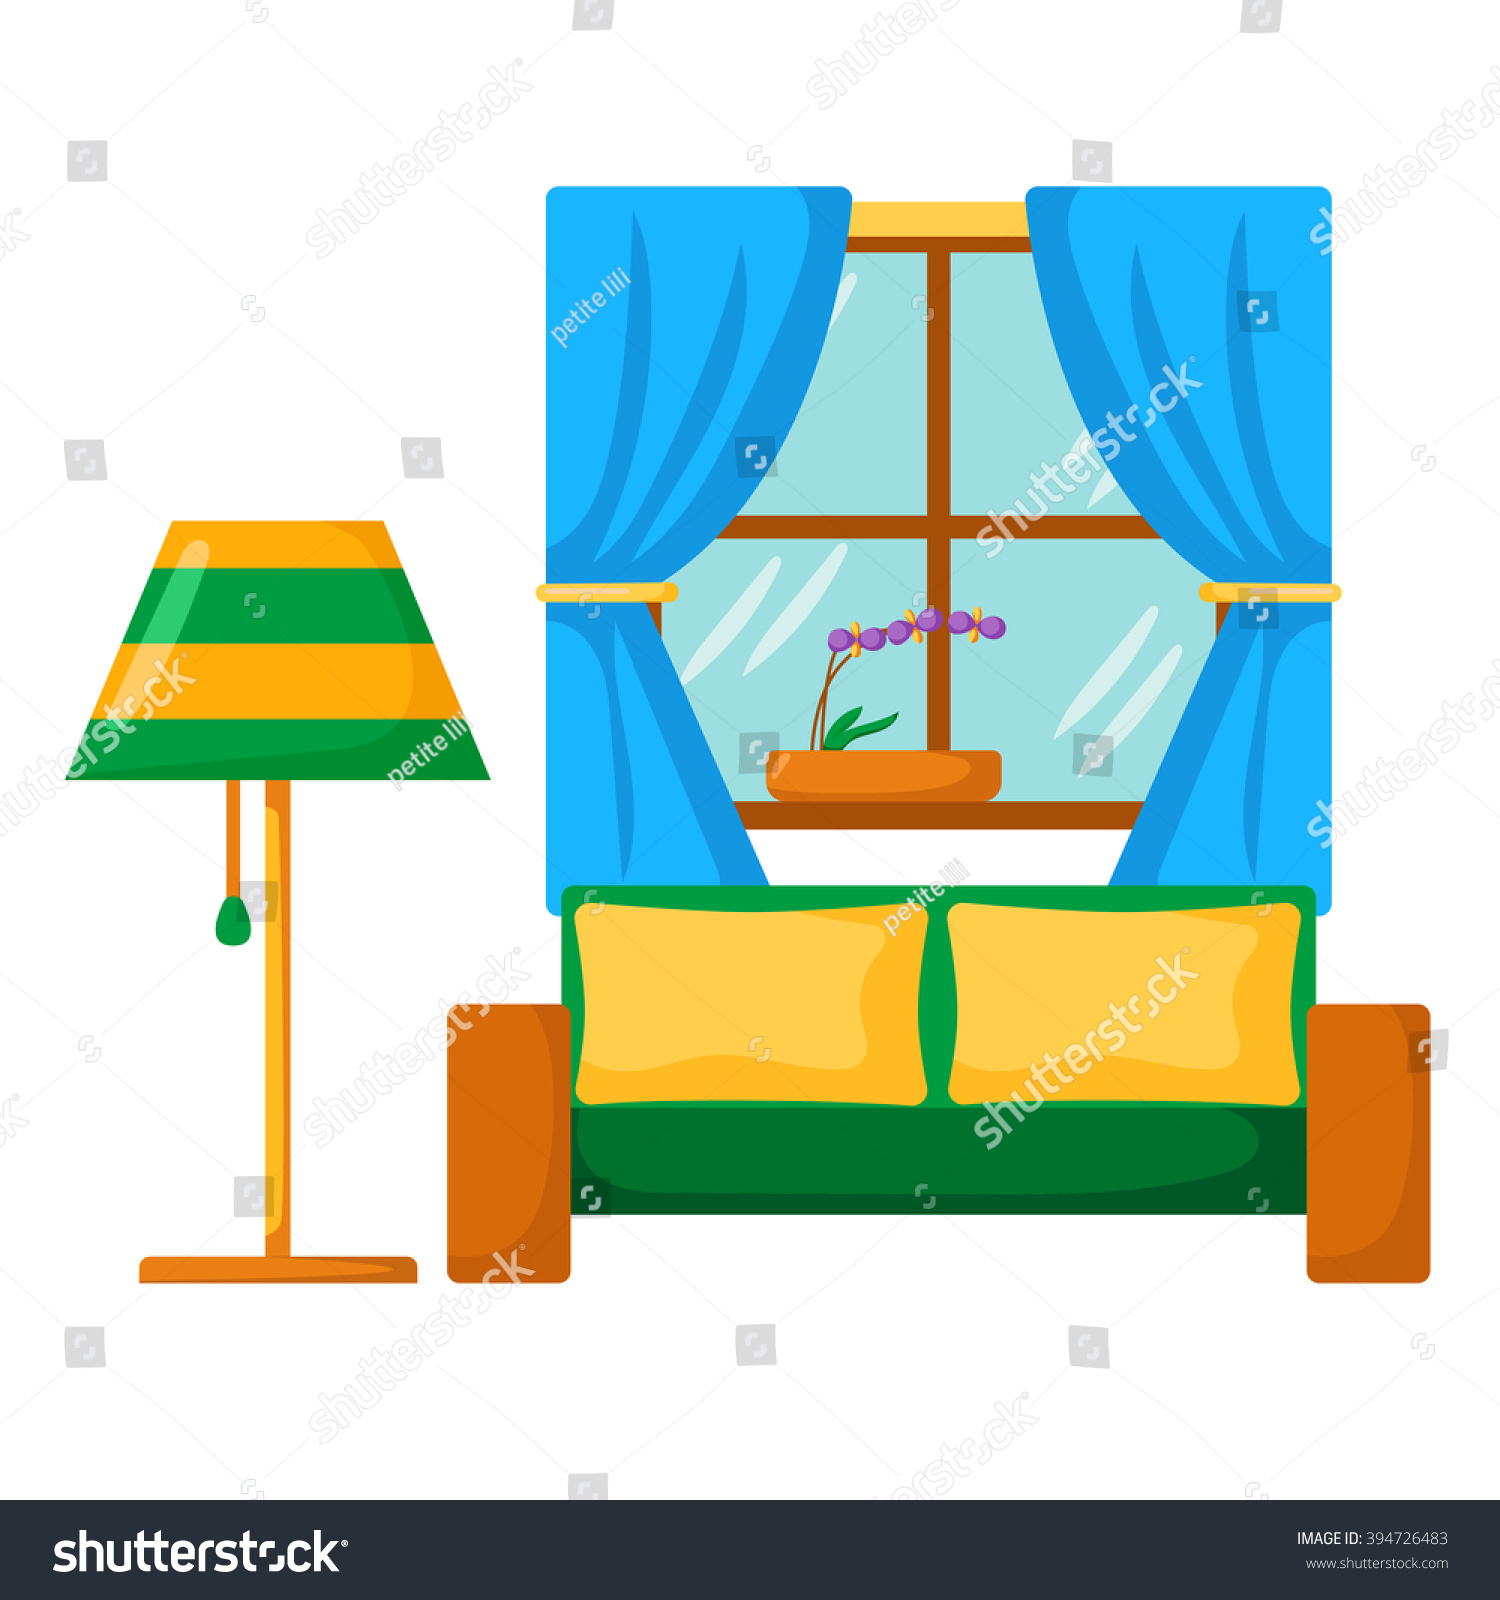 Cartoon kitchen with cabinets and window vector art illustration -  Vectors Illustrations Footage Music Vector Sofa Interior Cartoon Living Room Interior With Sofa Lamp Window Vector